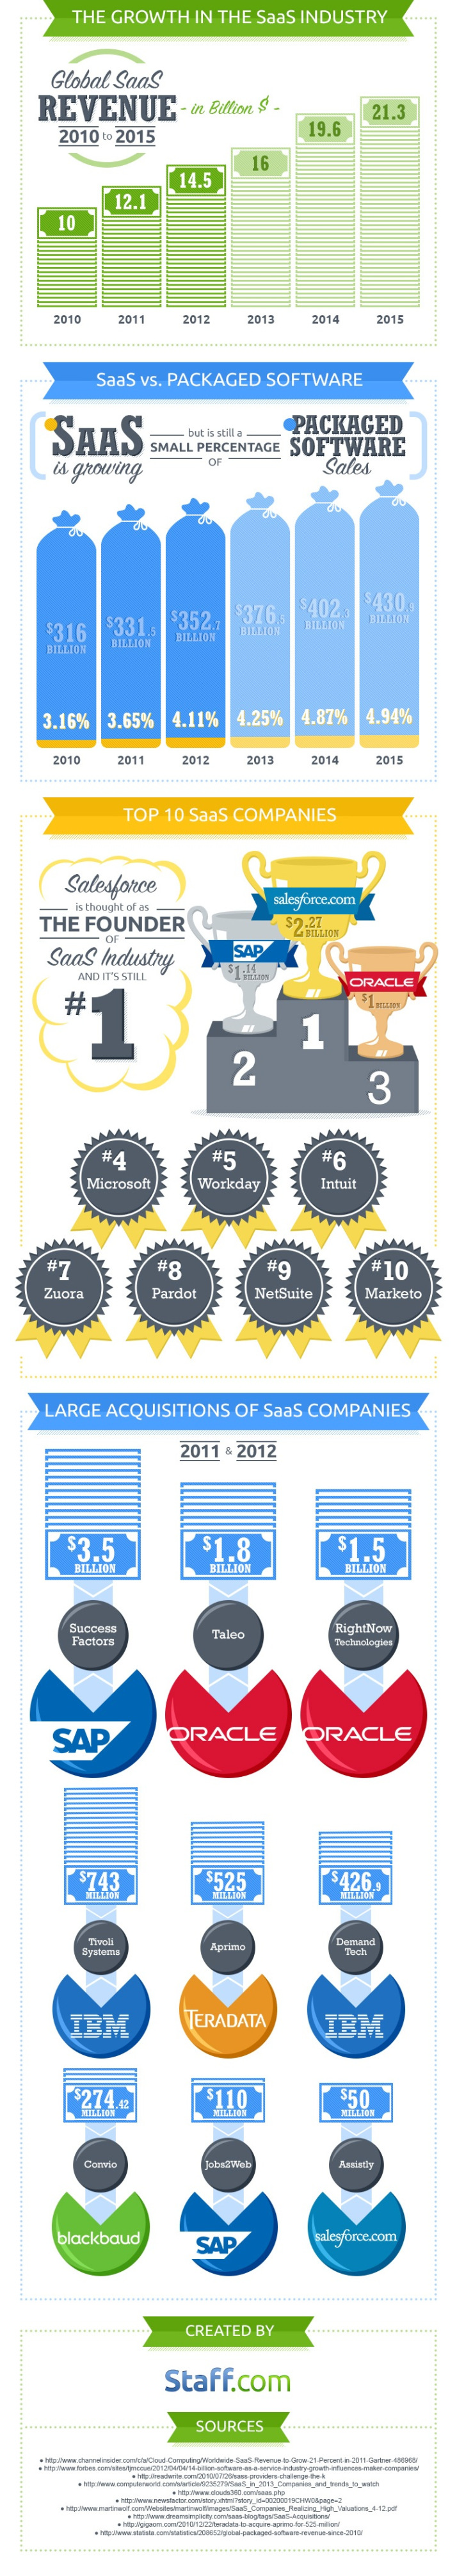 The growth in the SaaS industry #infographic #software cloud